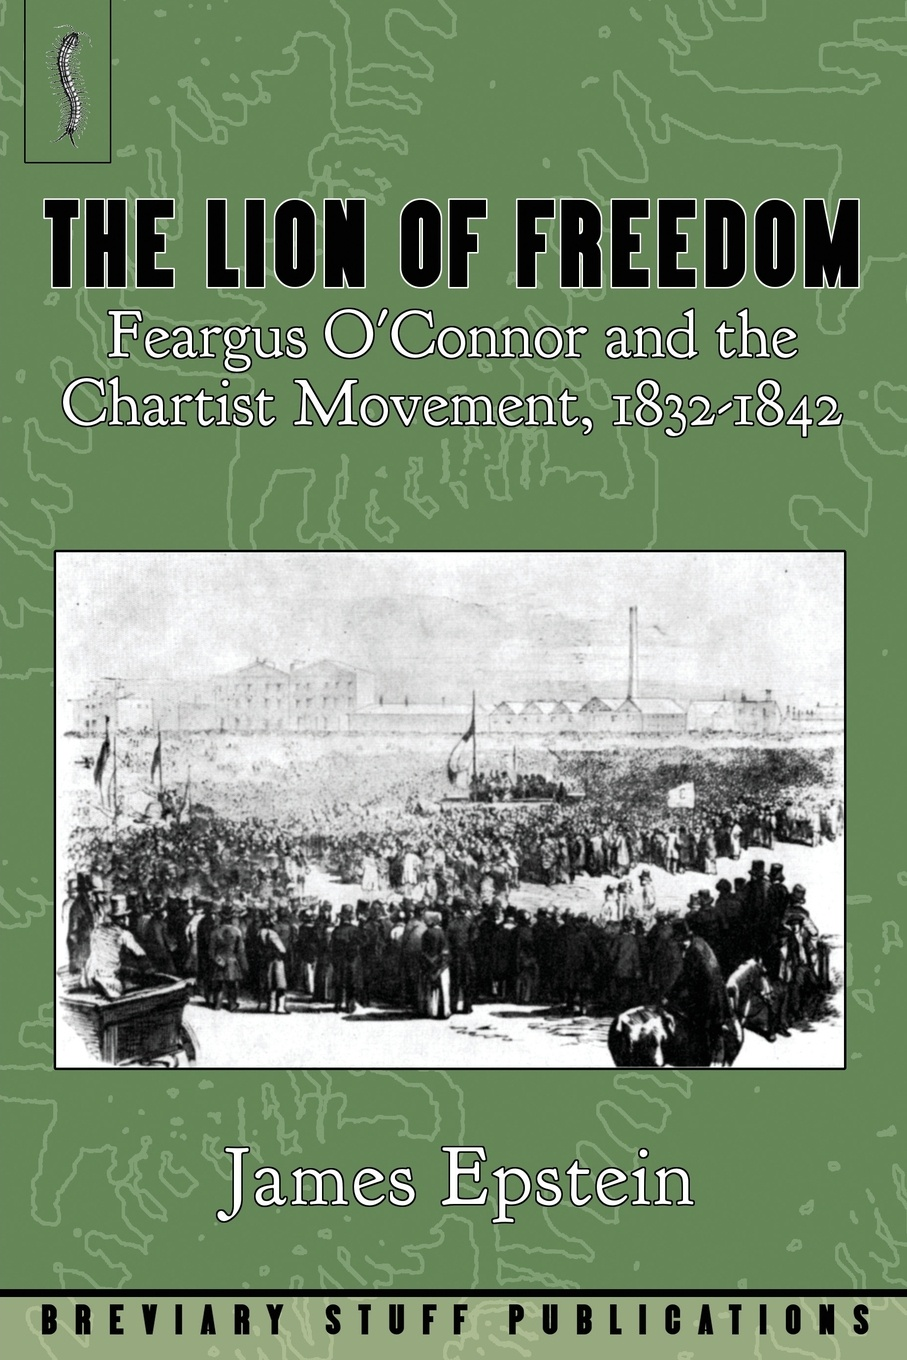 James Epstein The Lion of Freedom. Feargus O'Connor and the Chartist Movement, 1832-1842 michael archer d the forex chartist companion a visual approach to technical analysis